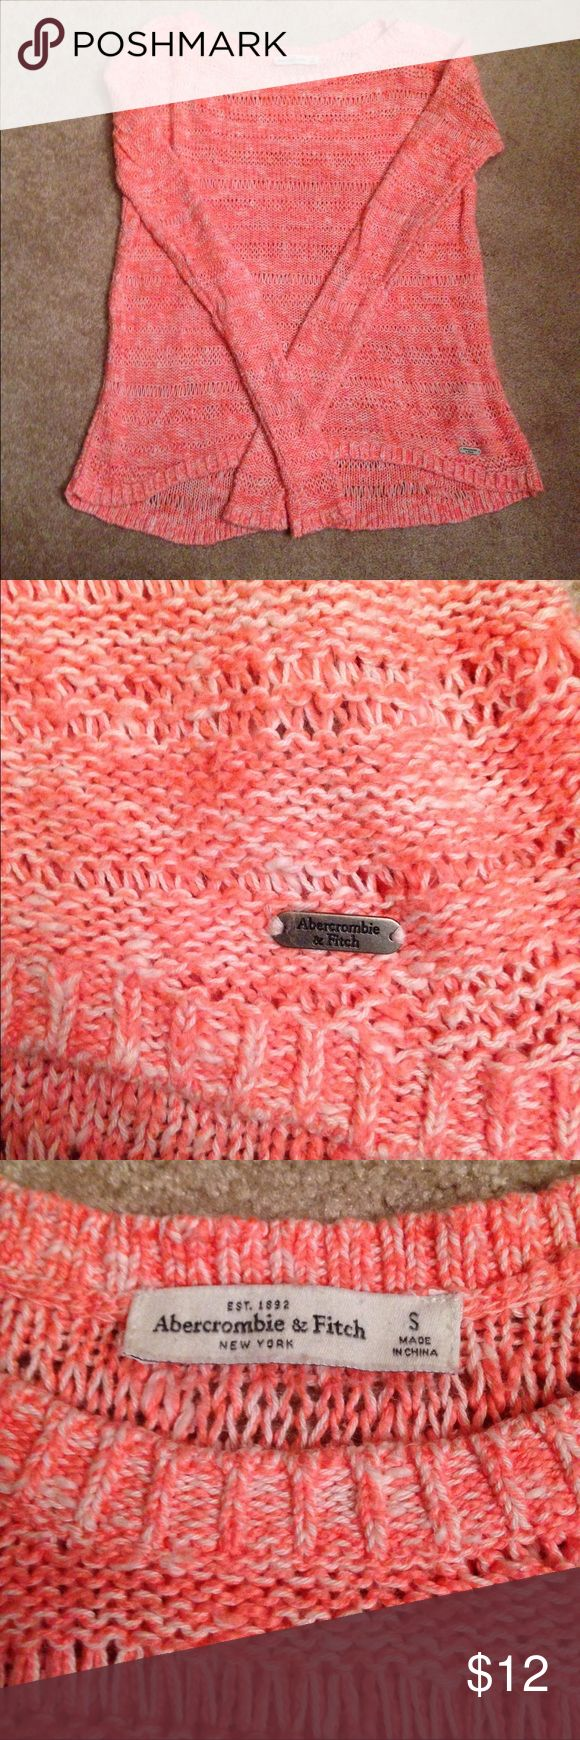 Abercrombie and Fitch sweater Coral and white Abercrombie and Fitch sweater. Perfect for a night out with leggings, or dressed up for the office. Perfect condition from a non smoking and pet free home Abercrombie & Fitch Sweaters Crew & Scoop Necks